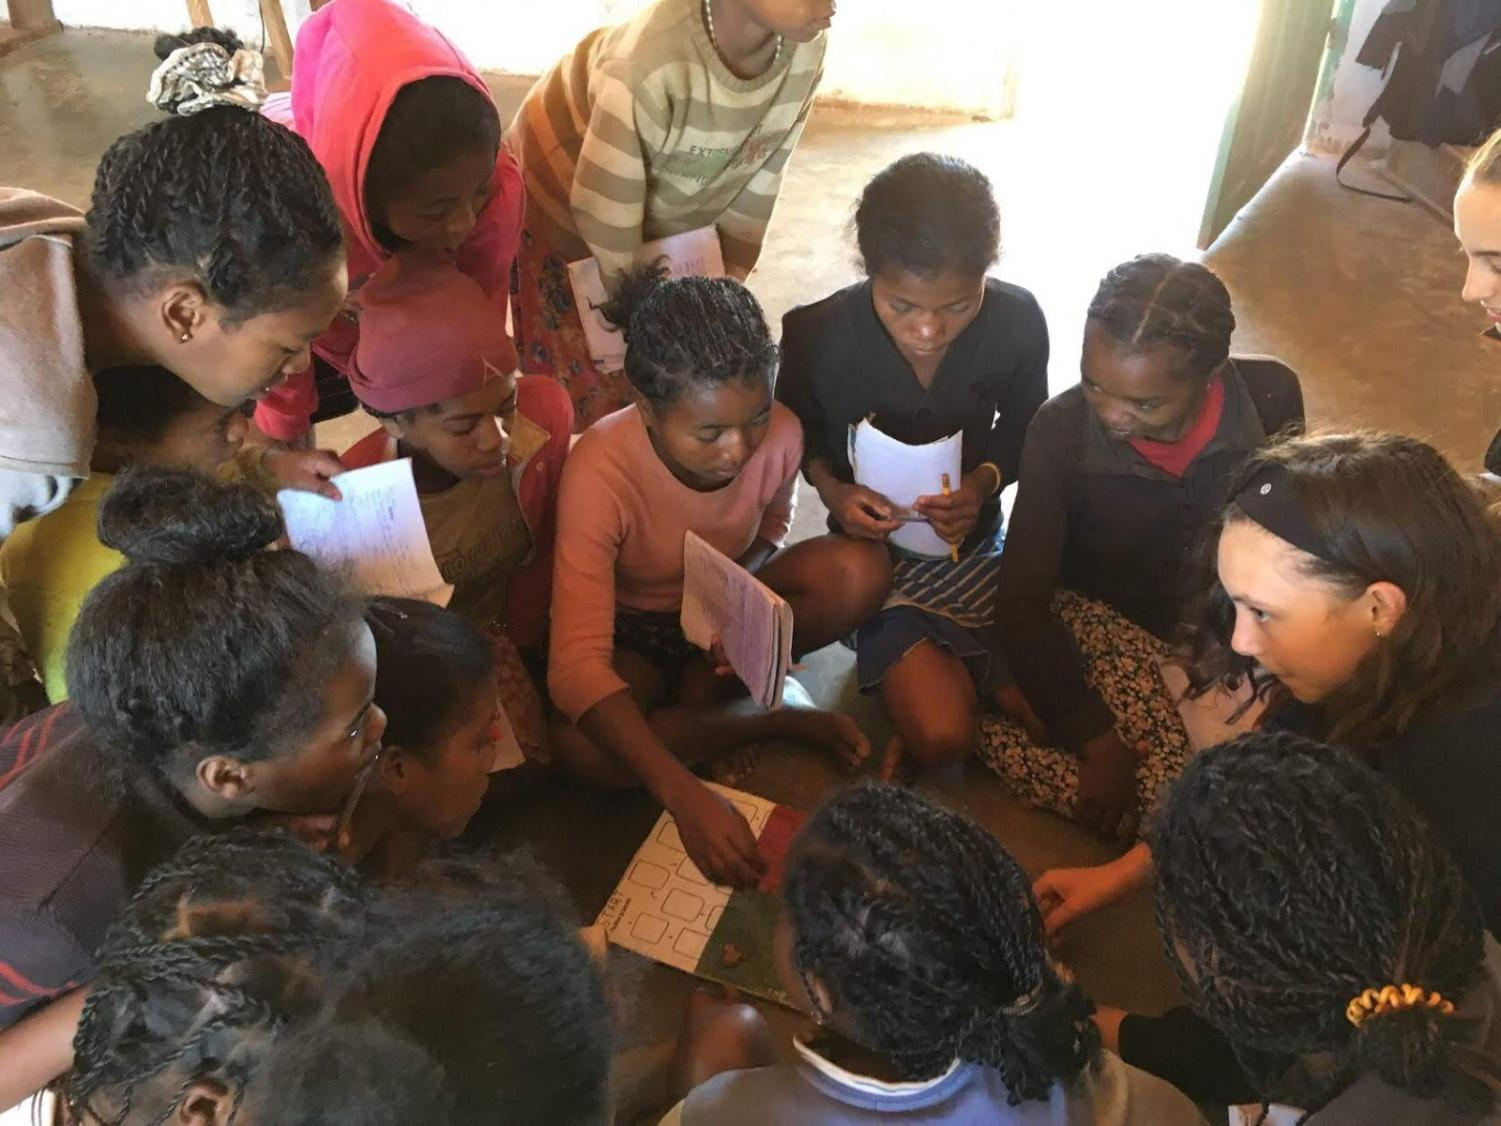 Emma uses a board game to teach numbers and colors in English to students in Madagascar.